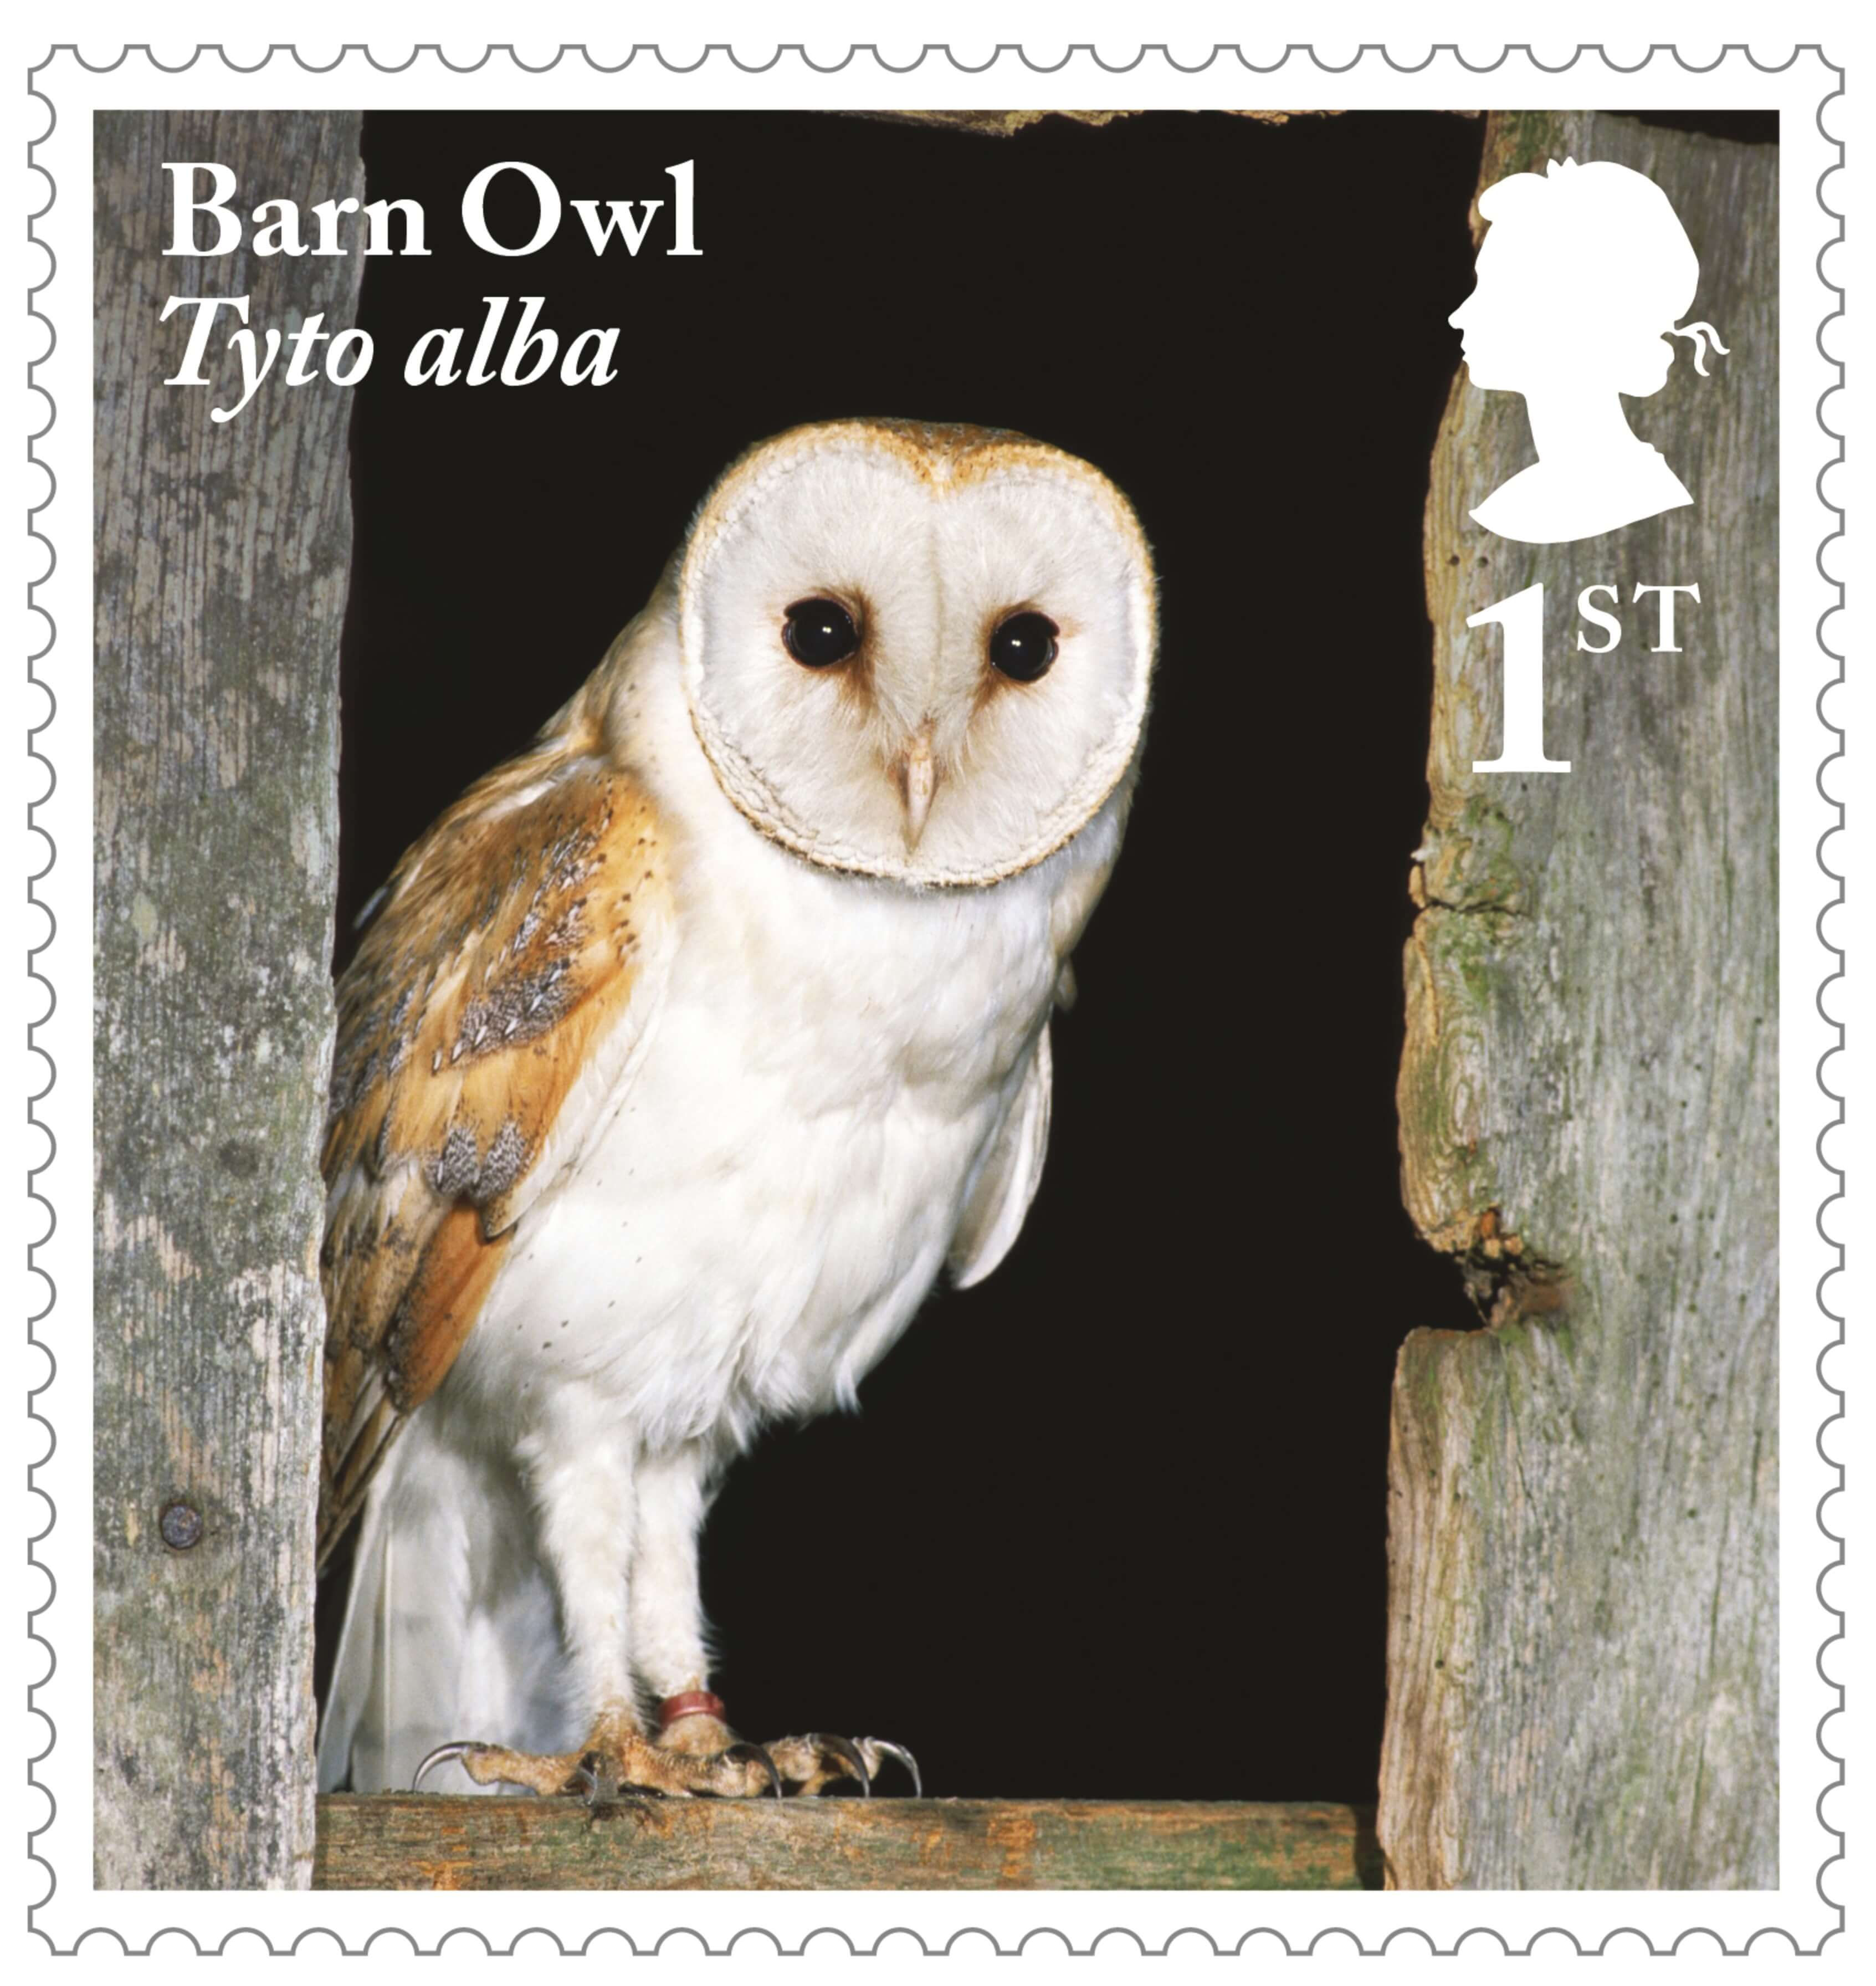 owls 2018 collect gb stamps